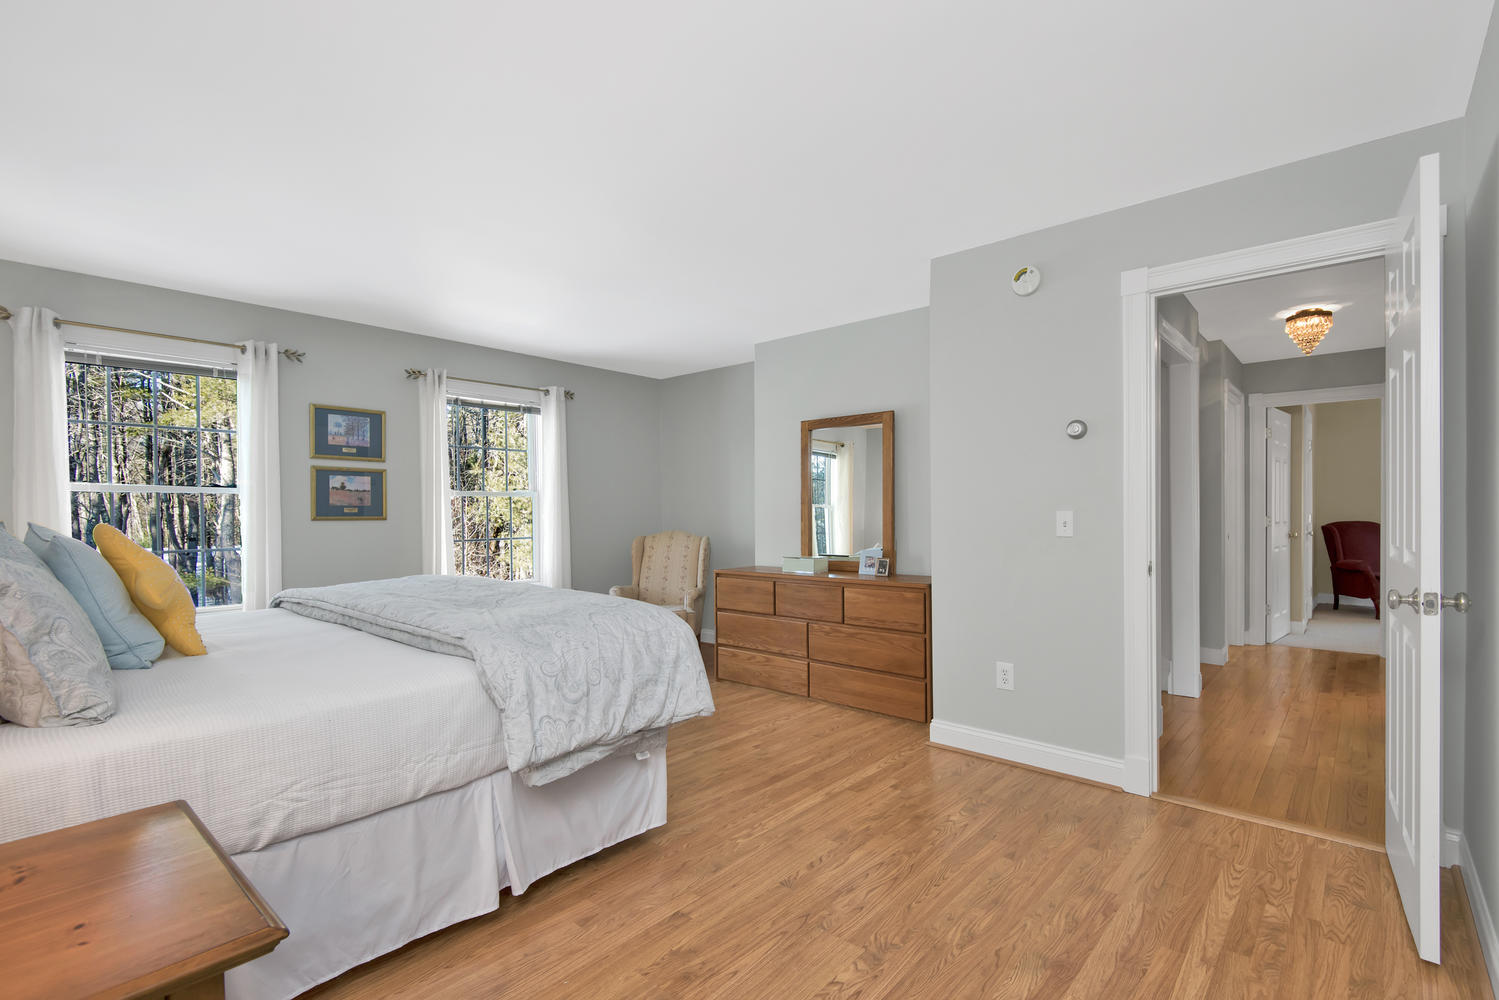 26 Titcomb Field Rd North-large-035-45-Master Bedroom-1499x1000-72dpi.jpg